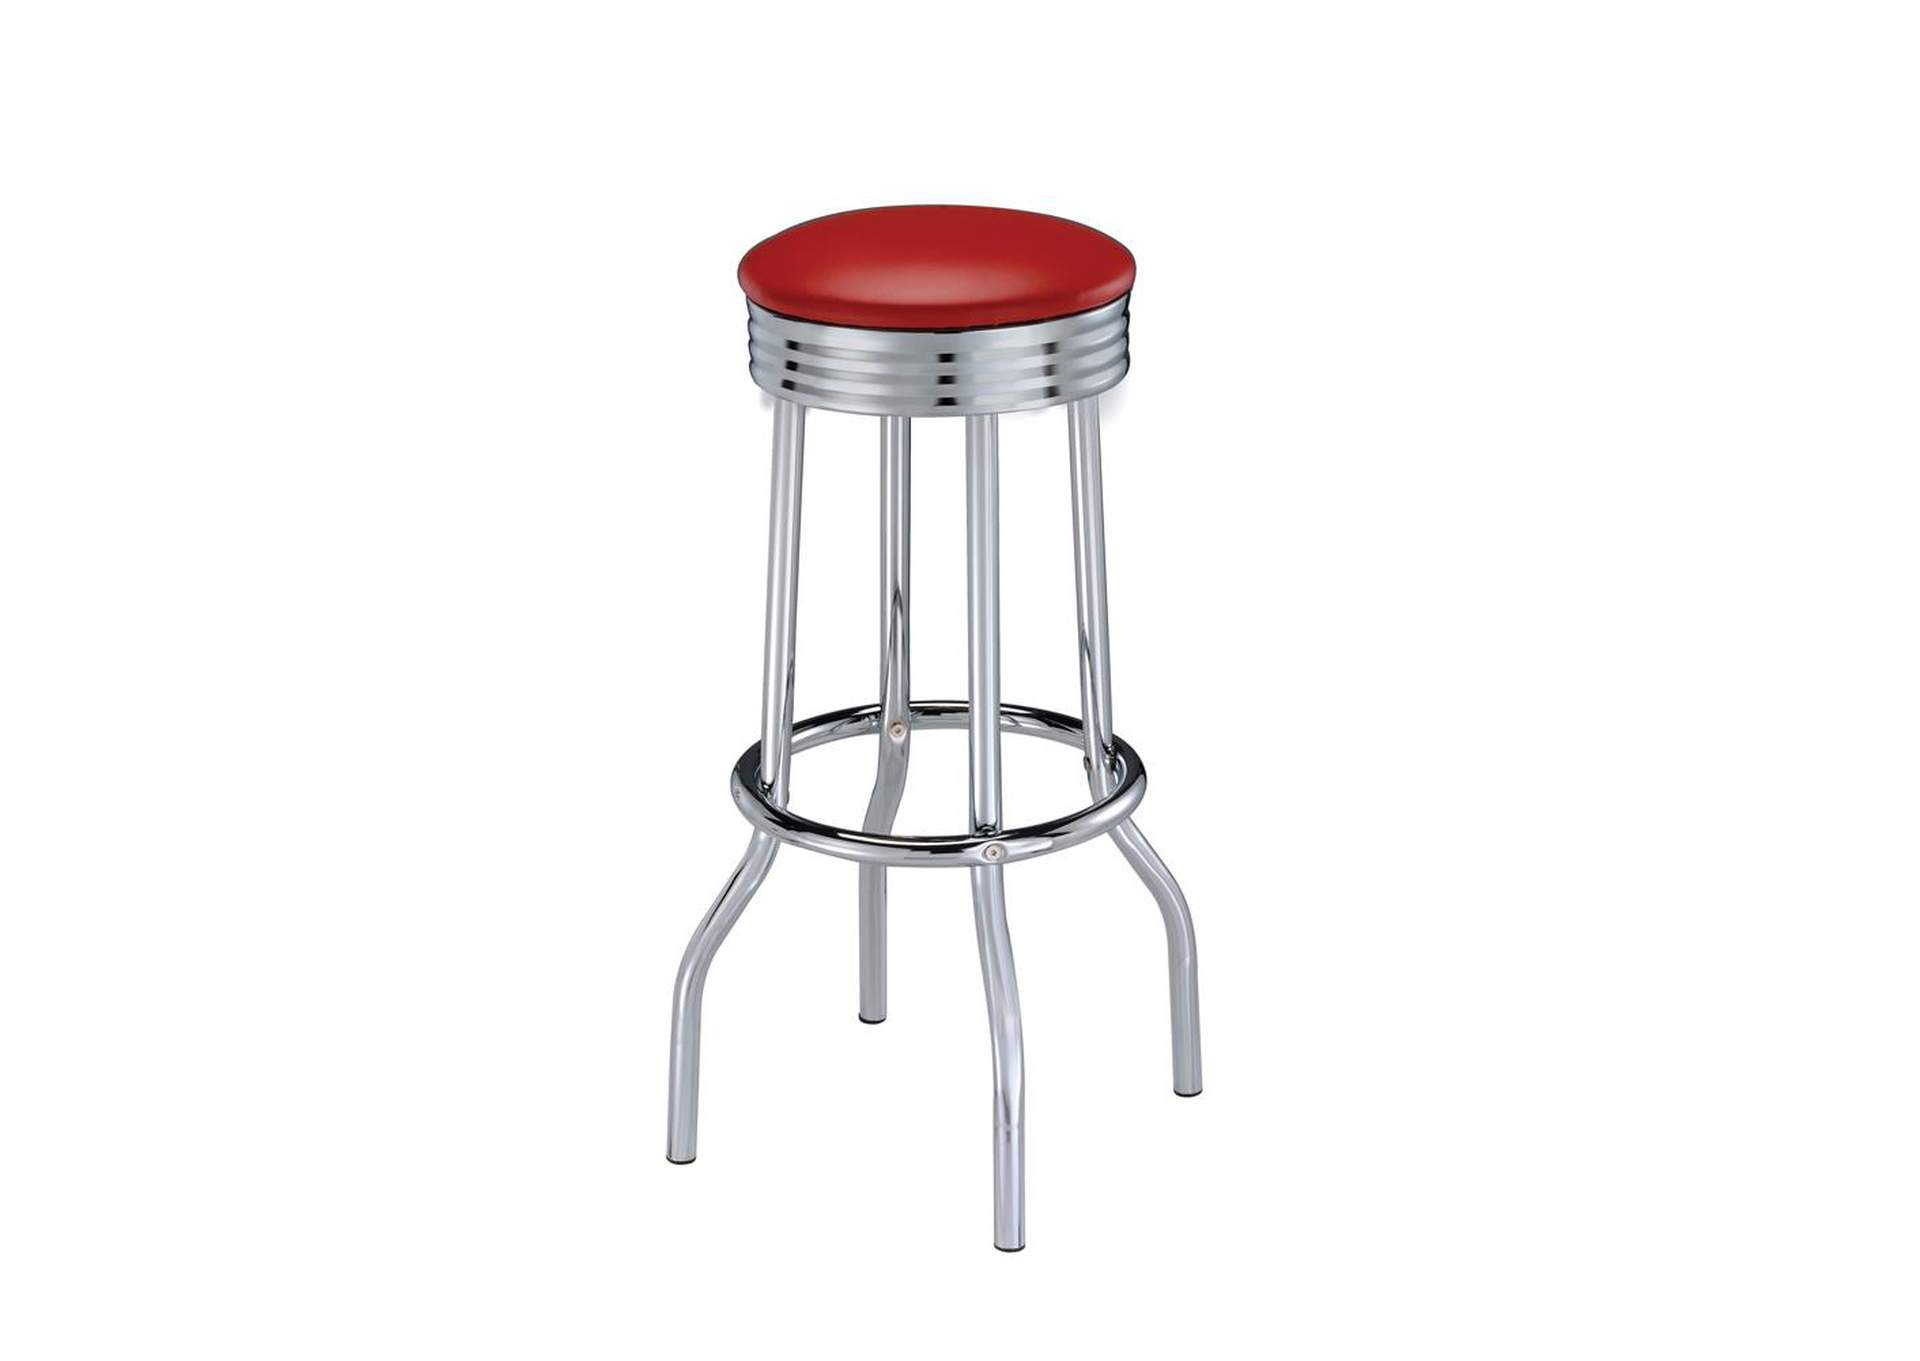 Upholstered Top Bar Stools Red And Chrome (Set of 2),Coaster Furniture